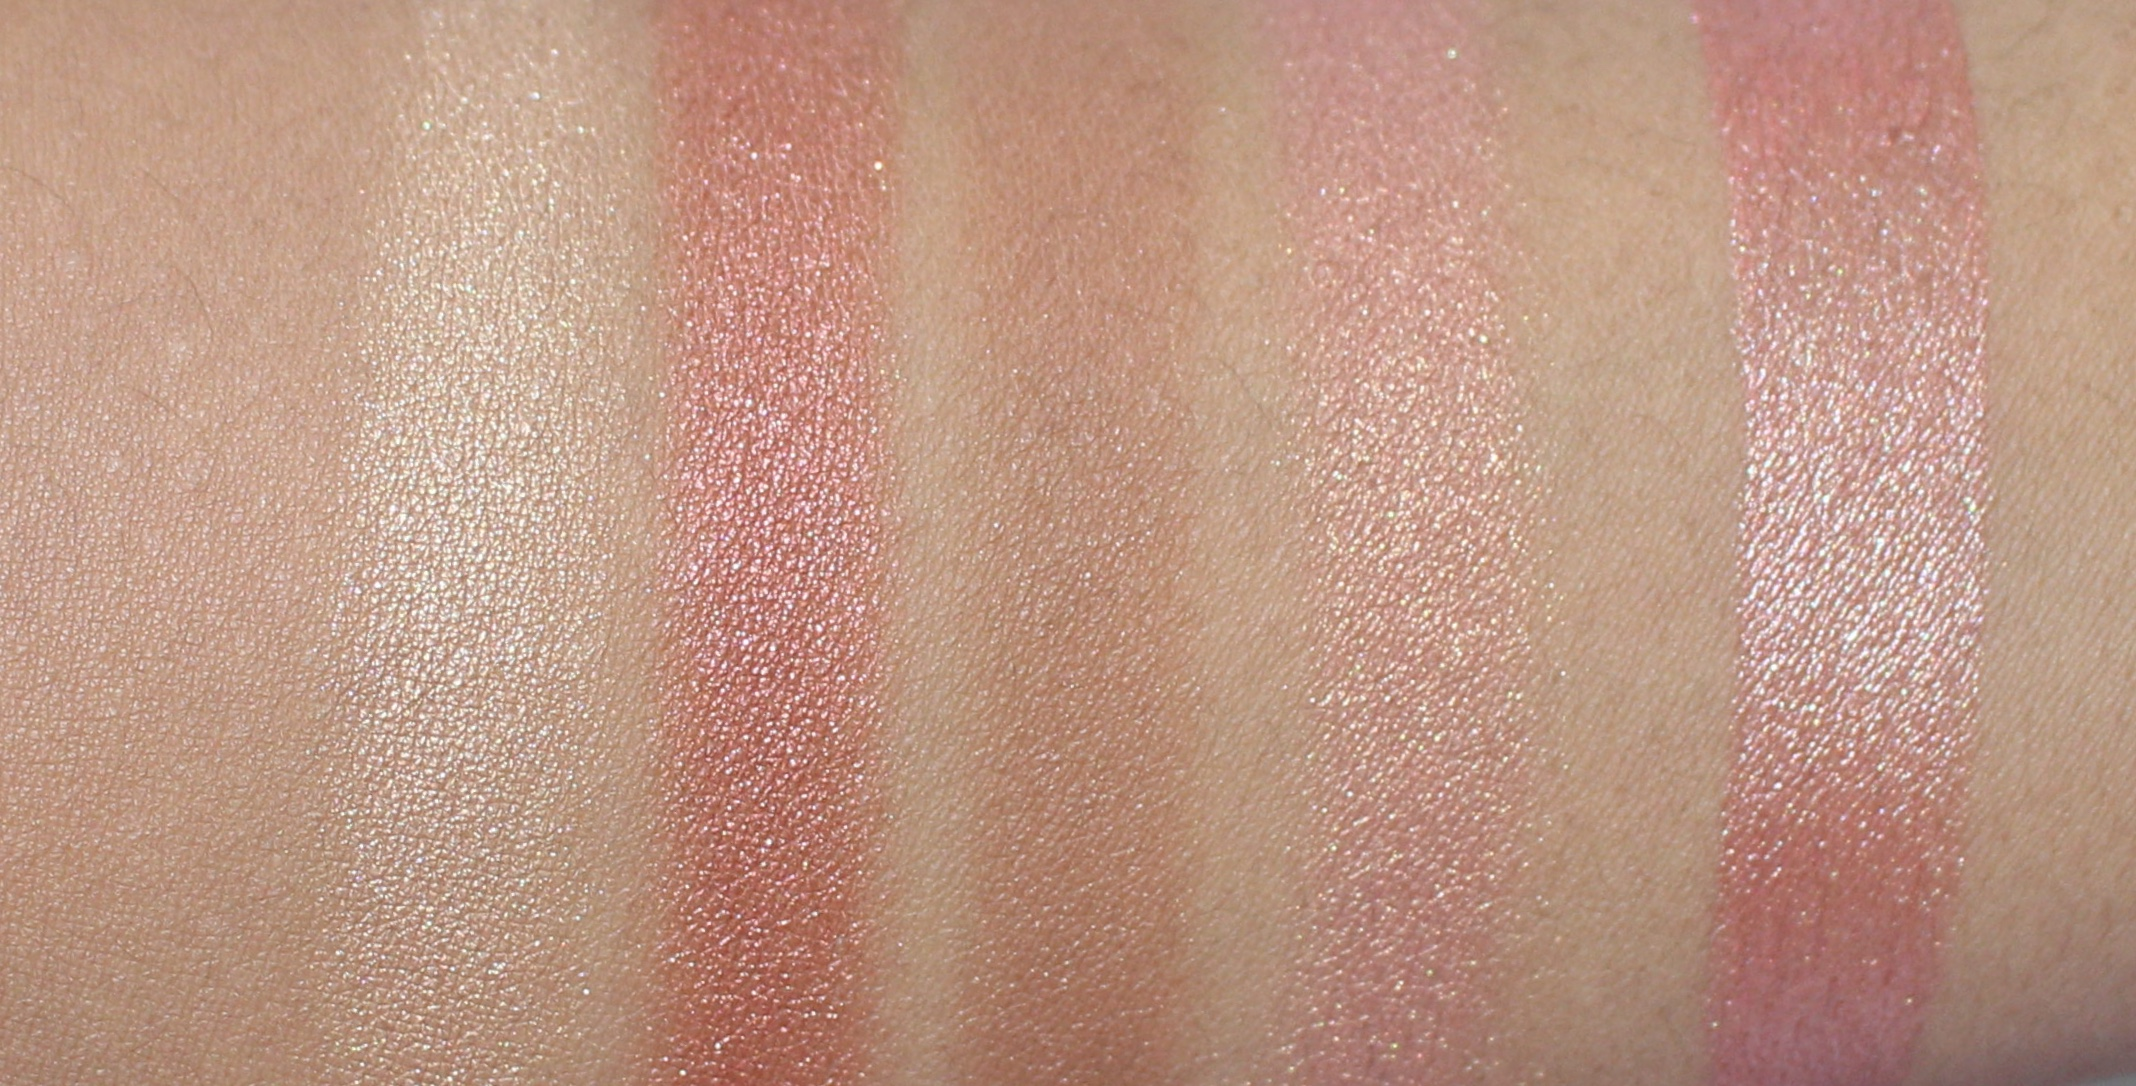 Lovegasm Face Palette and Pinkgasm Beauty Light Wand